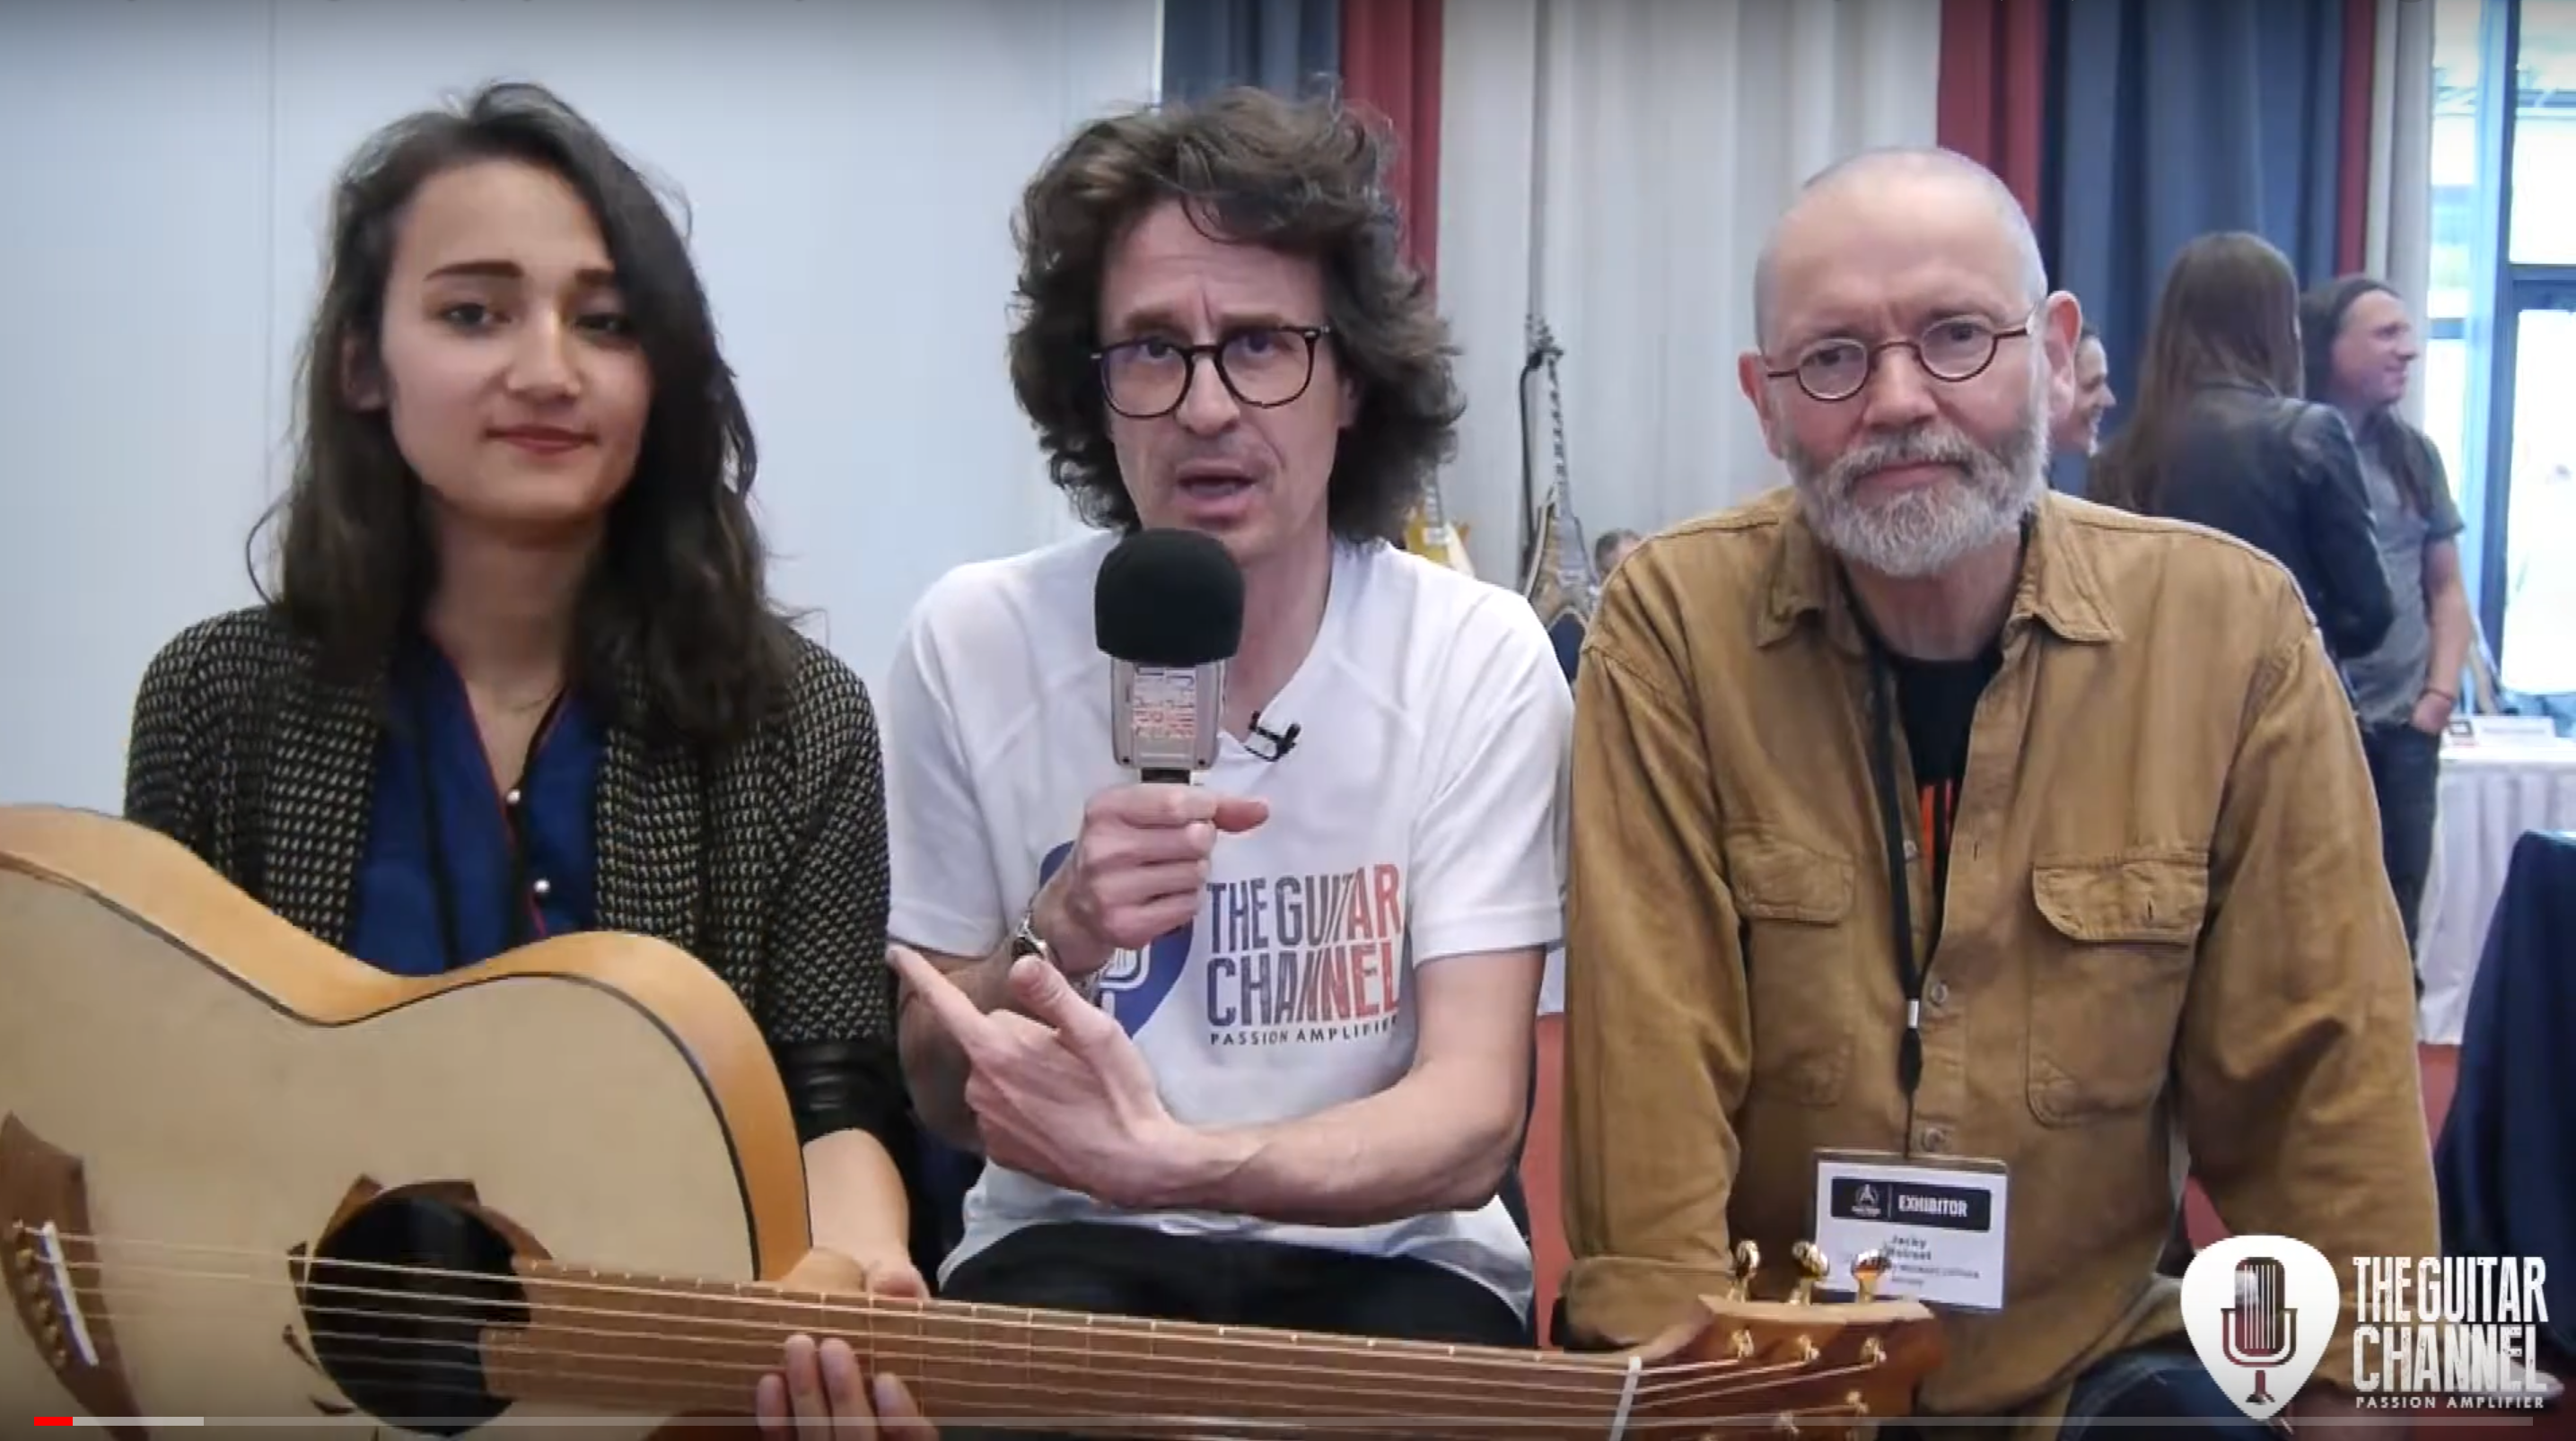 Jacky Bastek guitar player and Jacky Walraet luthier interview on the EGB Community Build